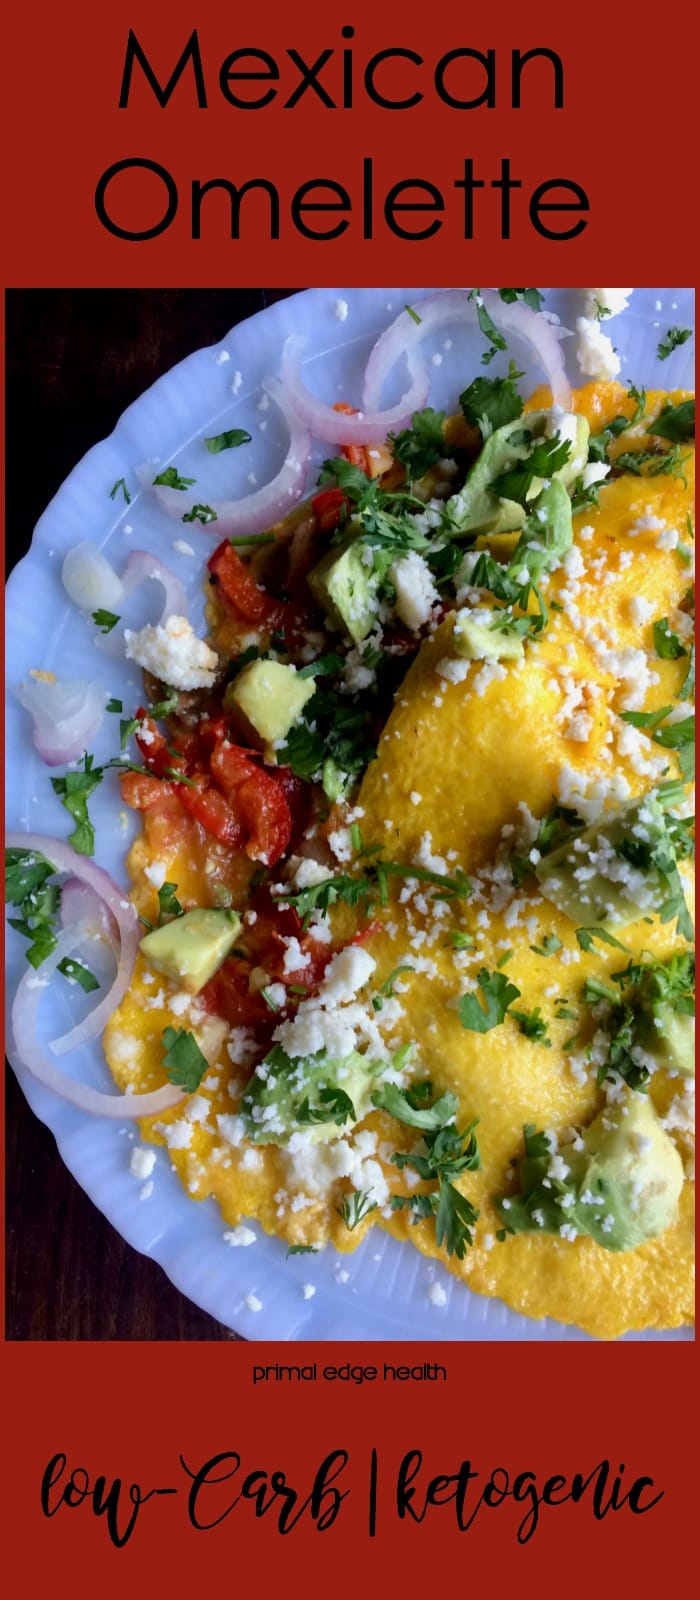 Mexican Omelette - Primal Edge Health